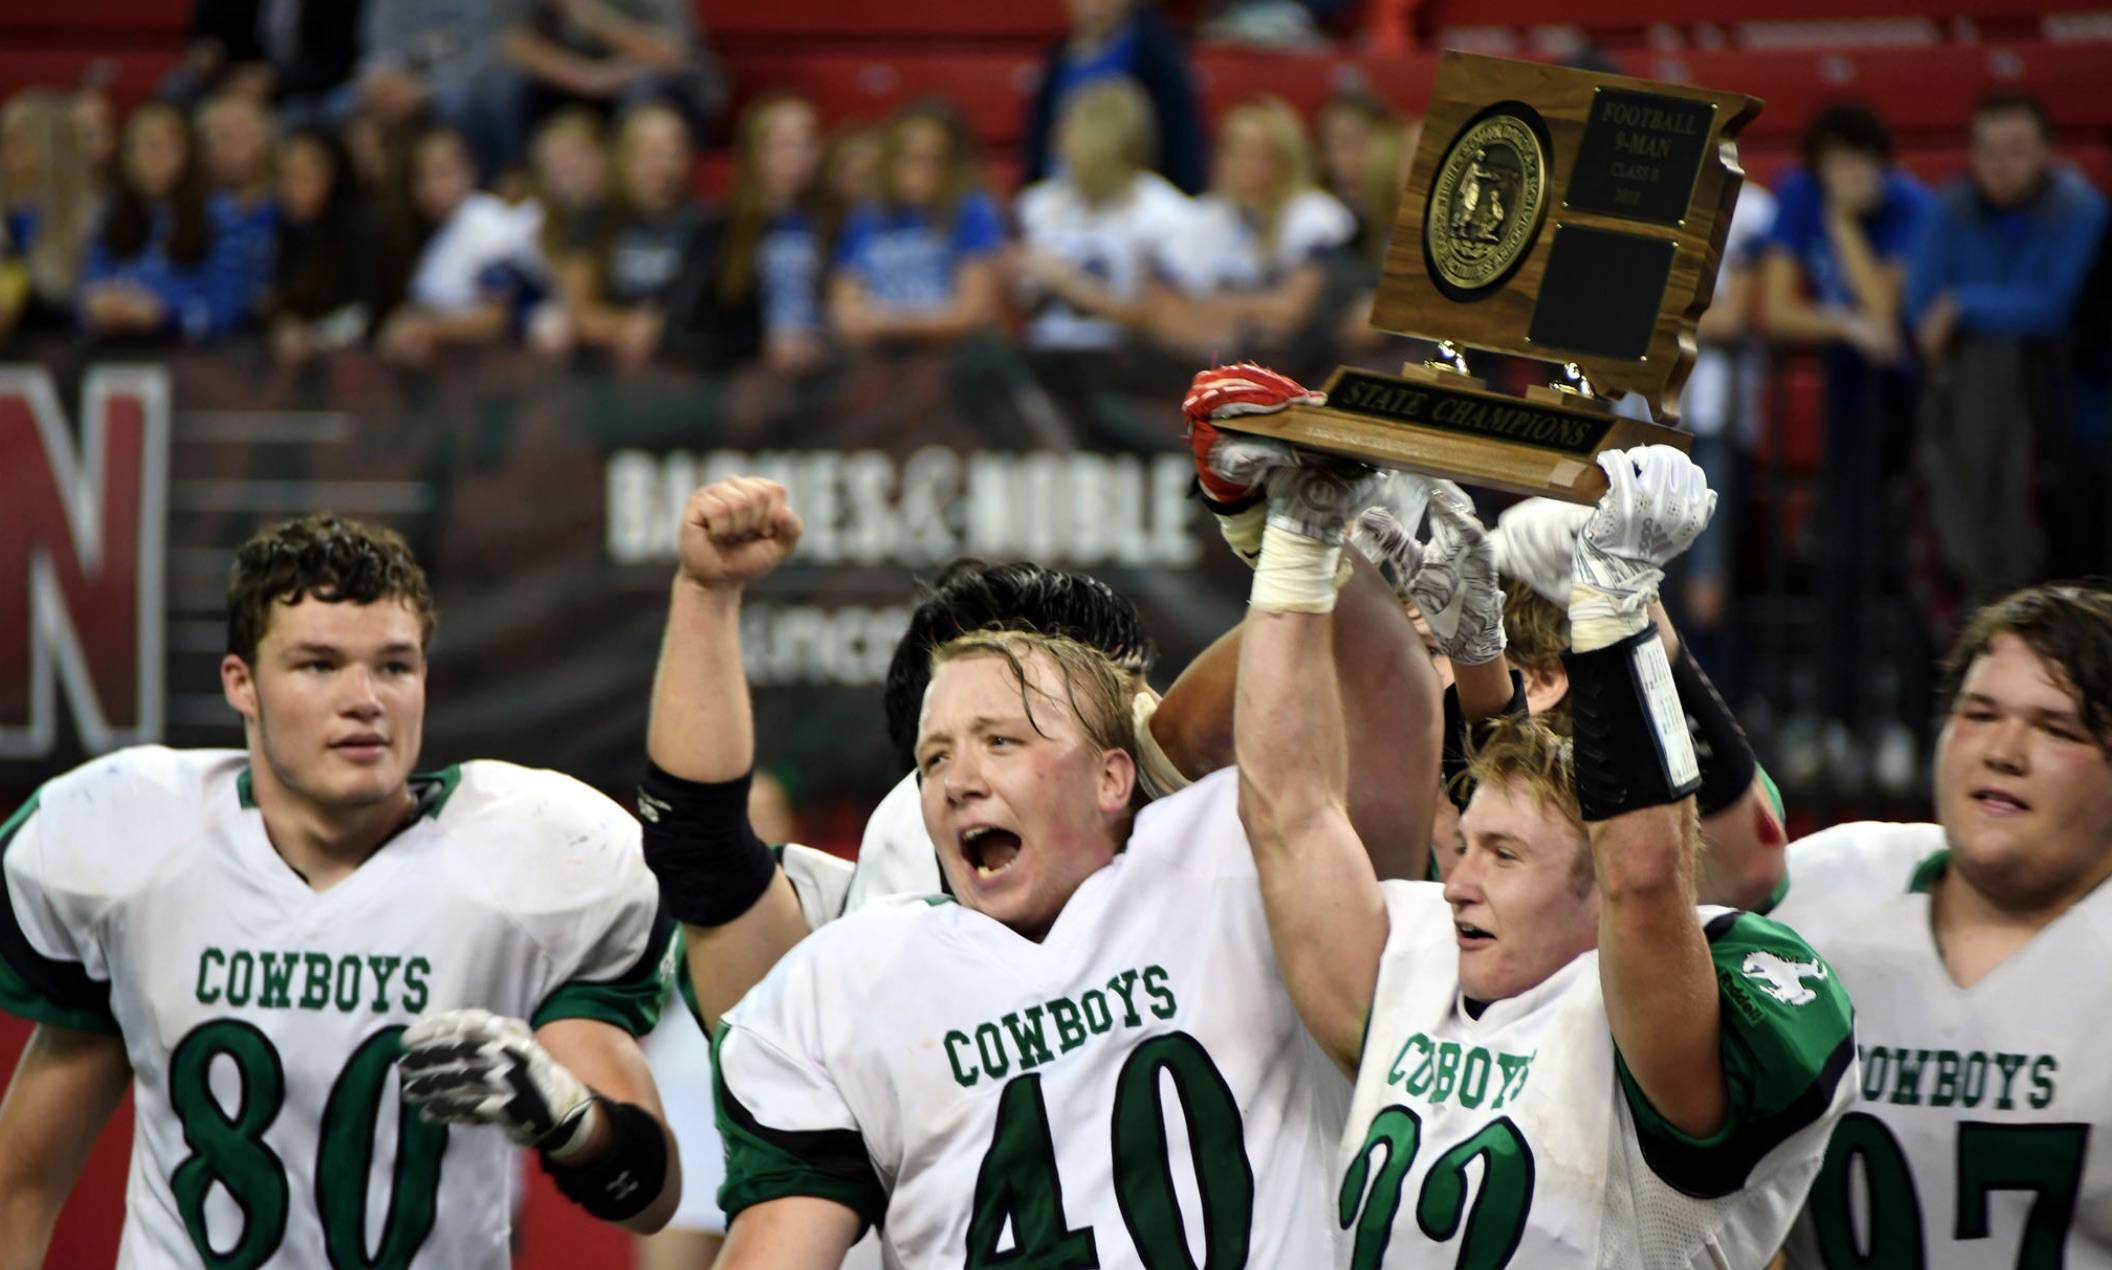 Colome Cowboys football team holding state title